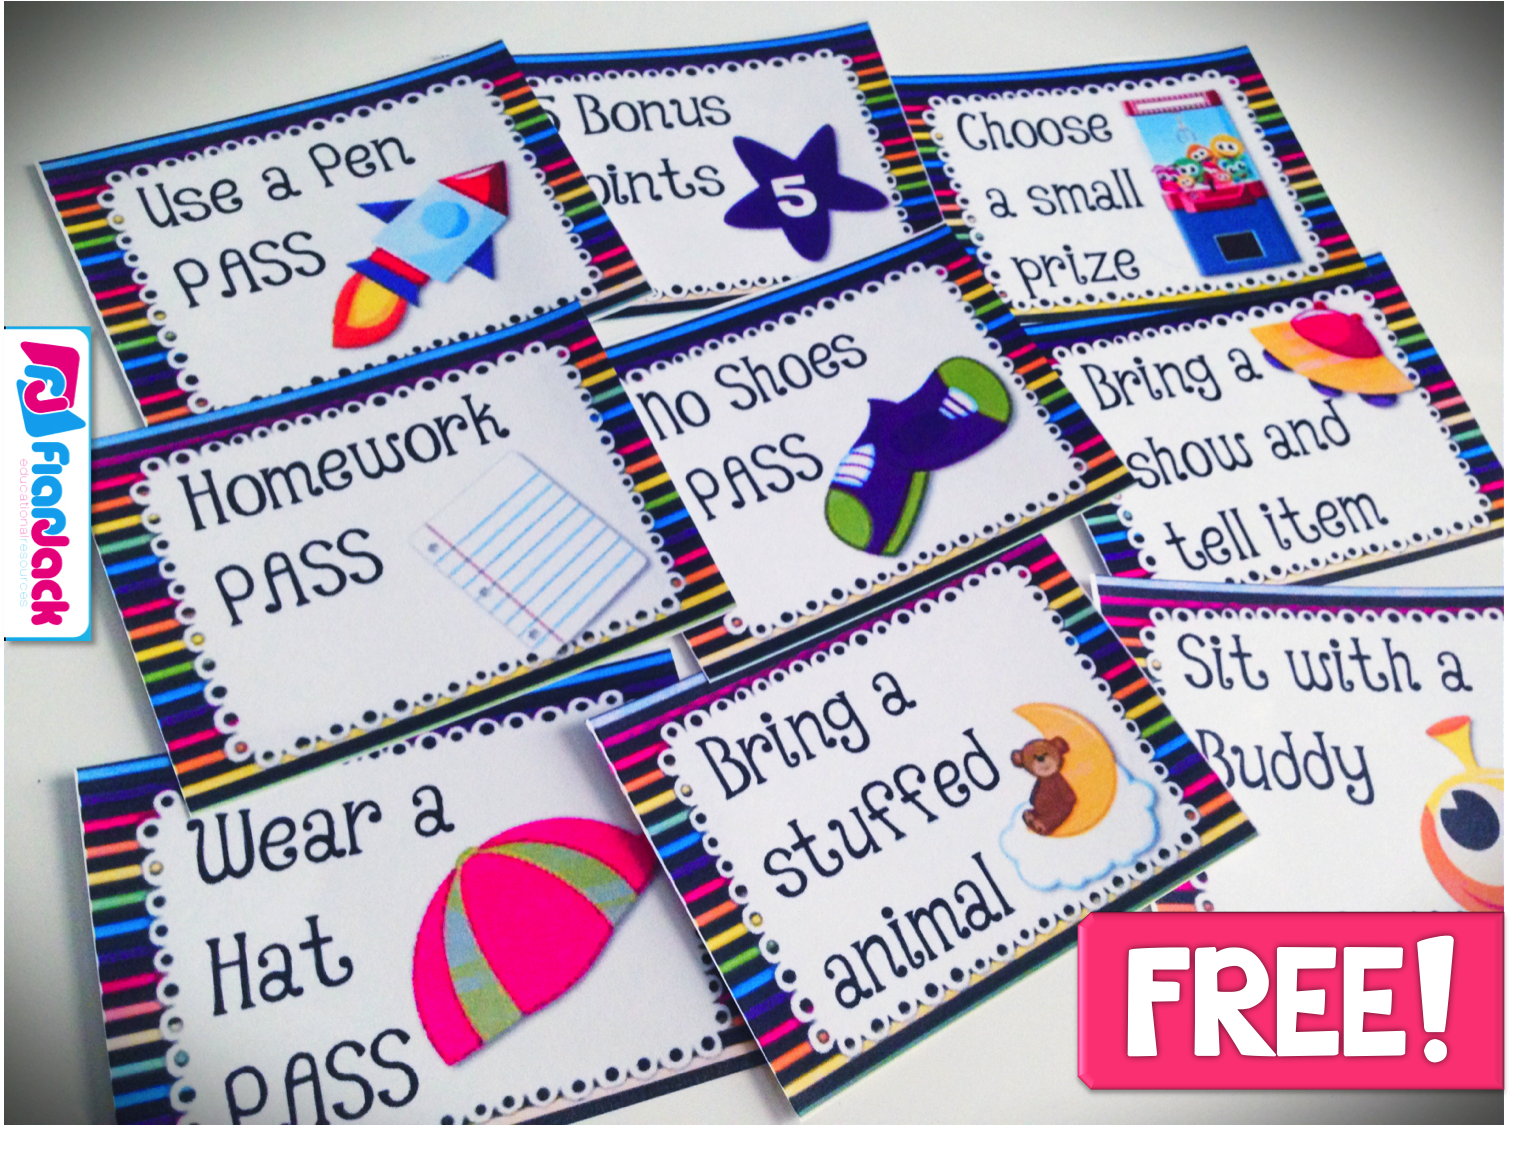 Classroom Party Ideas For Good Behavior : Space behavior coupons freebie ideas classroom decor